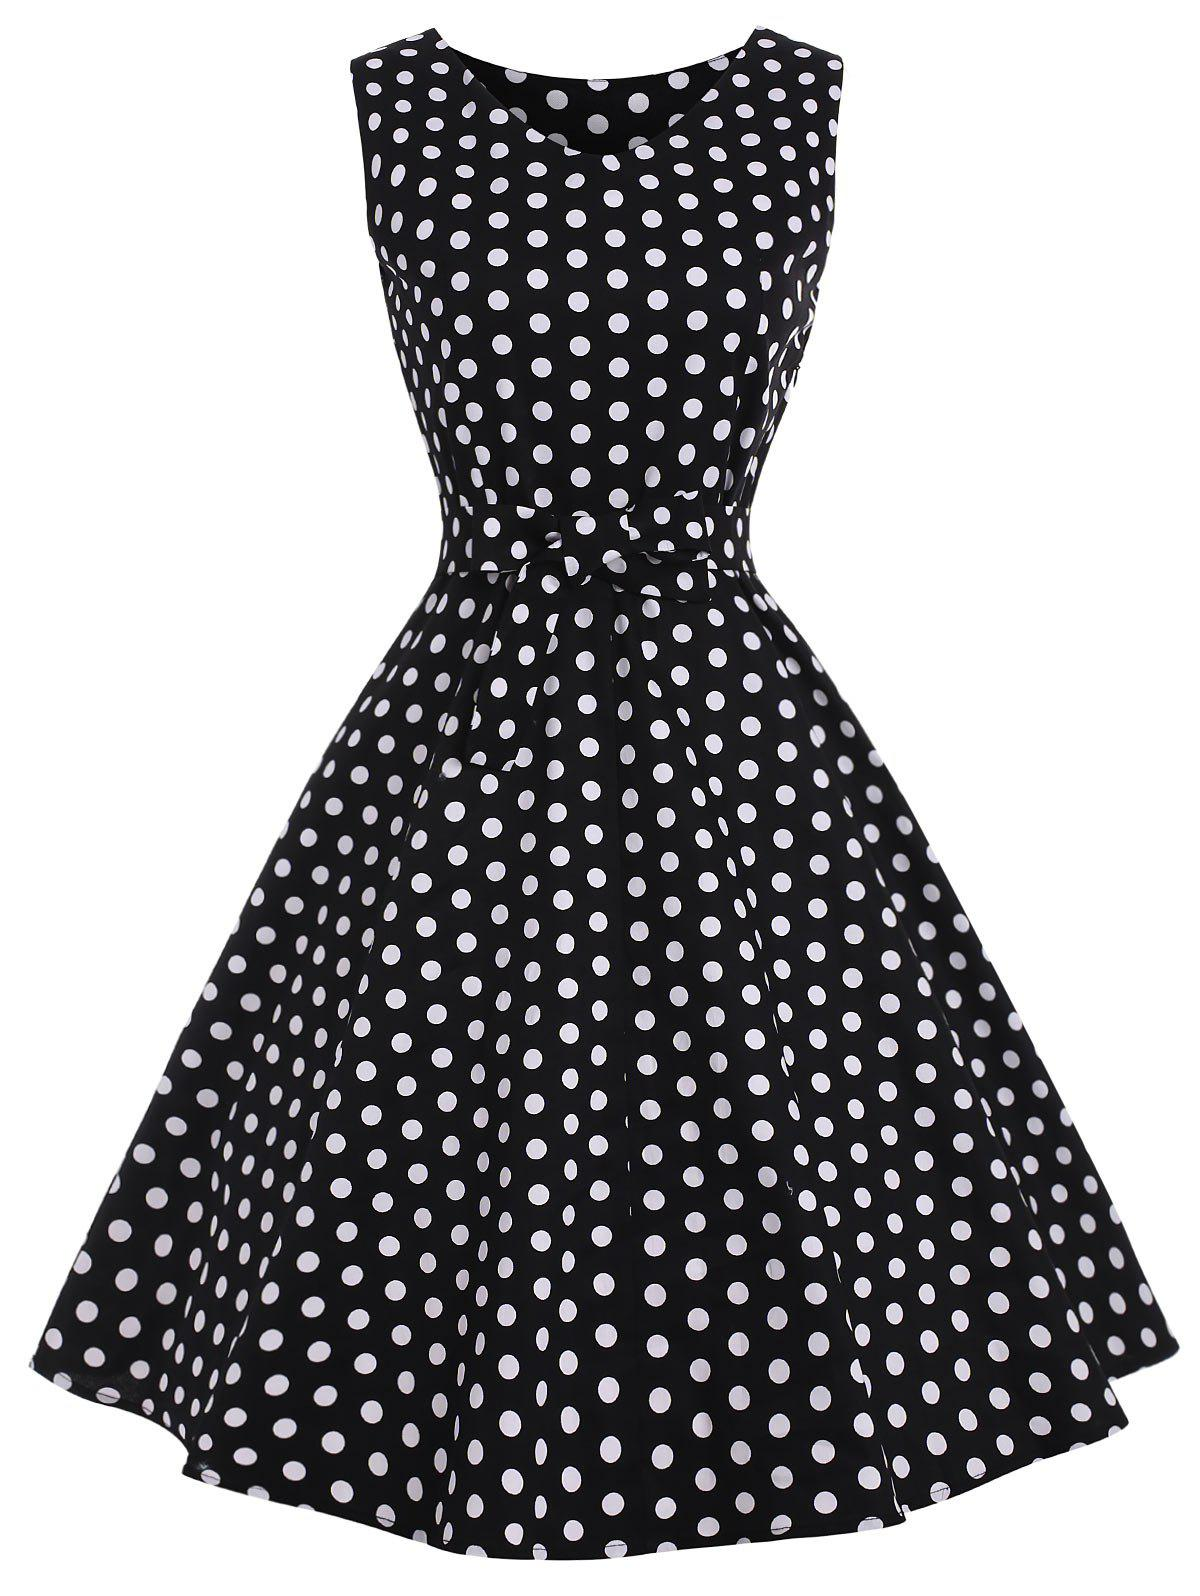 Chic Vintage Dotted Pin Up Dress